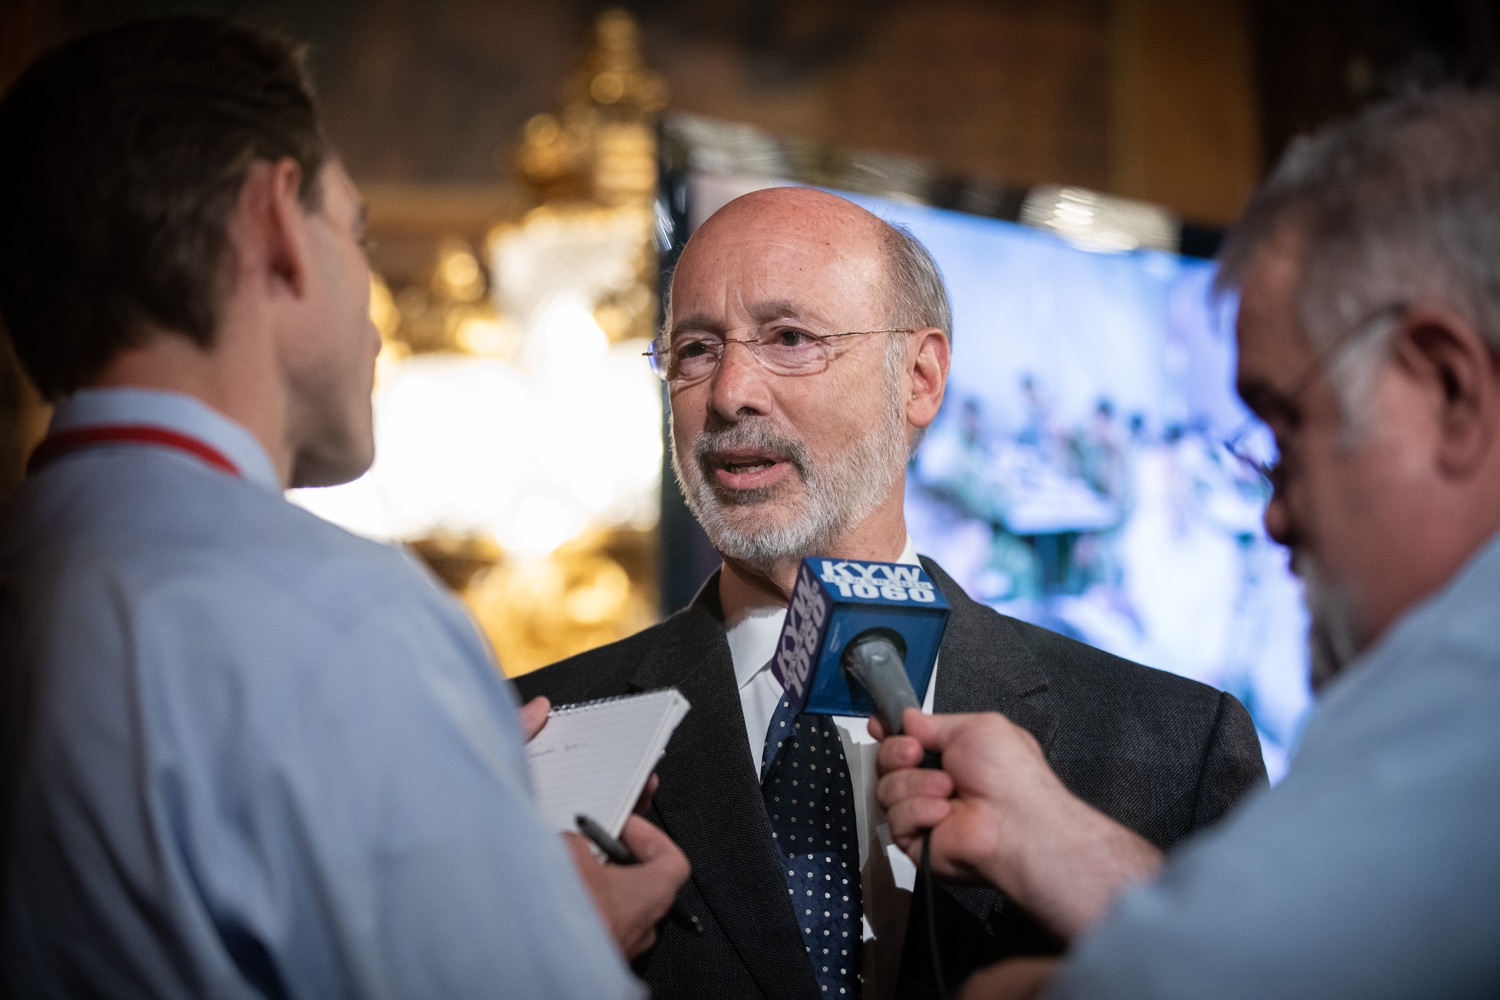 "<a href=""http://filesource.abacast.com/commonwealthofpa/photo/17423_gov_trip_recap_dz_005.jpg"" target=""_blank"">⇣ Download Photo<br></a>Harrisburg, PA  Governor Tom Wolf speaking with the press.  Governor Tom Wolf today highlighted the second half of his trip abroad, including visiting with more than 500 PA National Guard (PNG) troops in Poland, and honoring the Tree of Life synagogue victims at the Auschwitz-Birkenau Memorial. Tuesday, September 17, 2019"